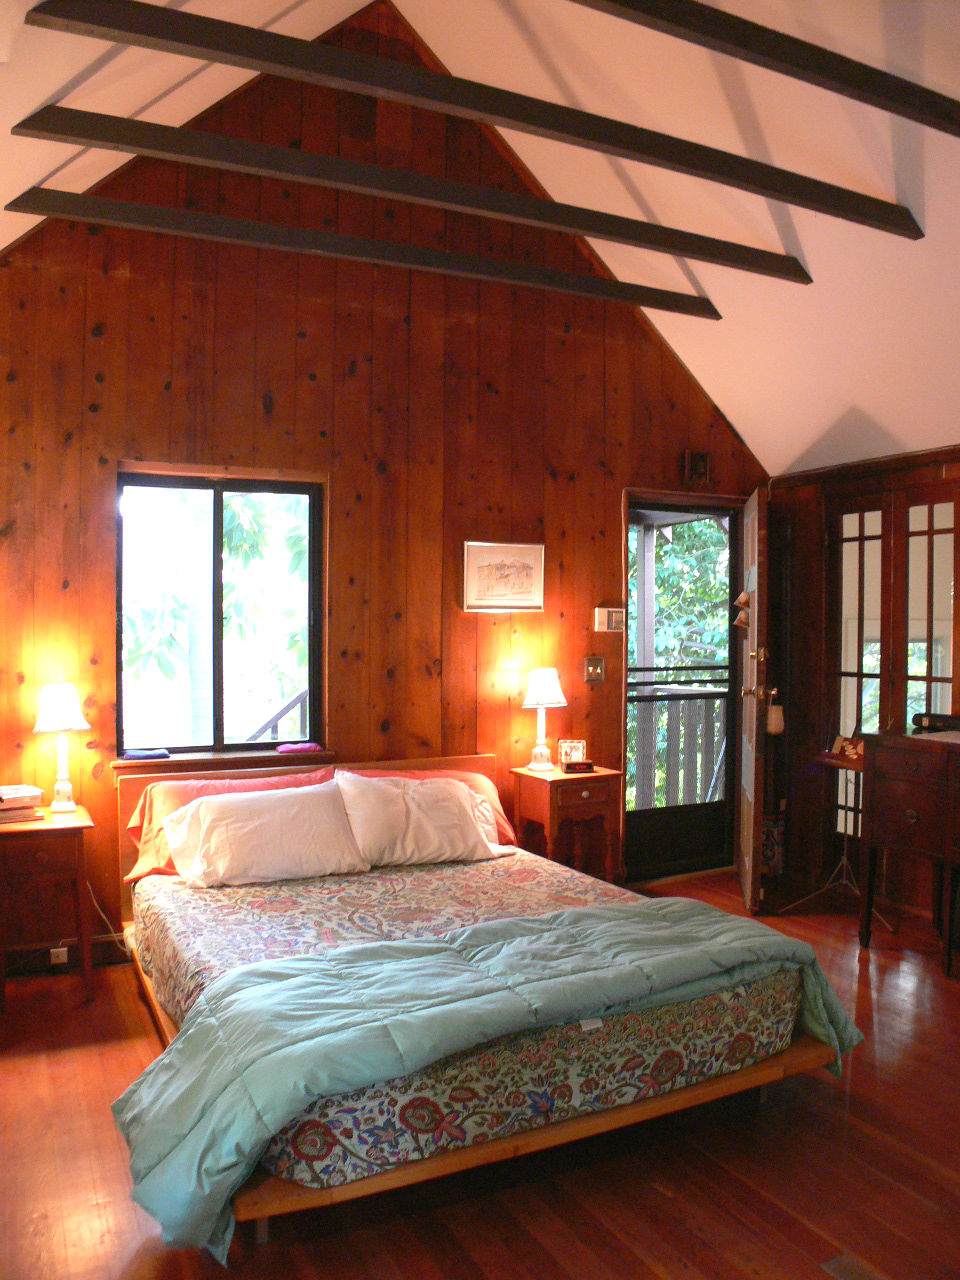 Master bedroom suite with separate entrance and cathedral/beamed ceiling and window seat.